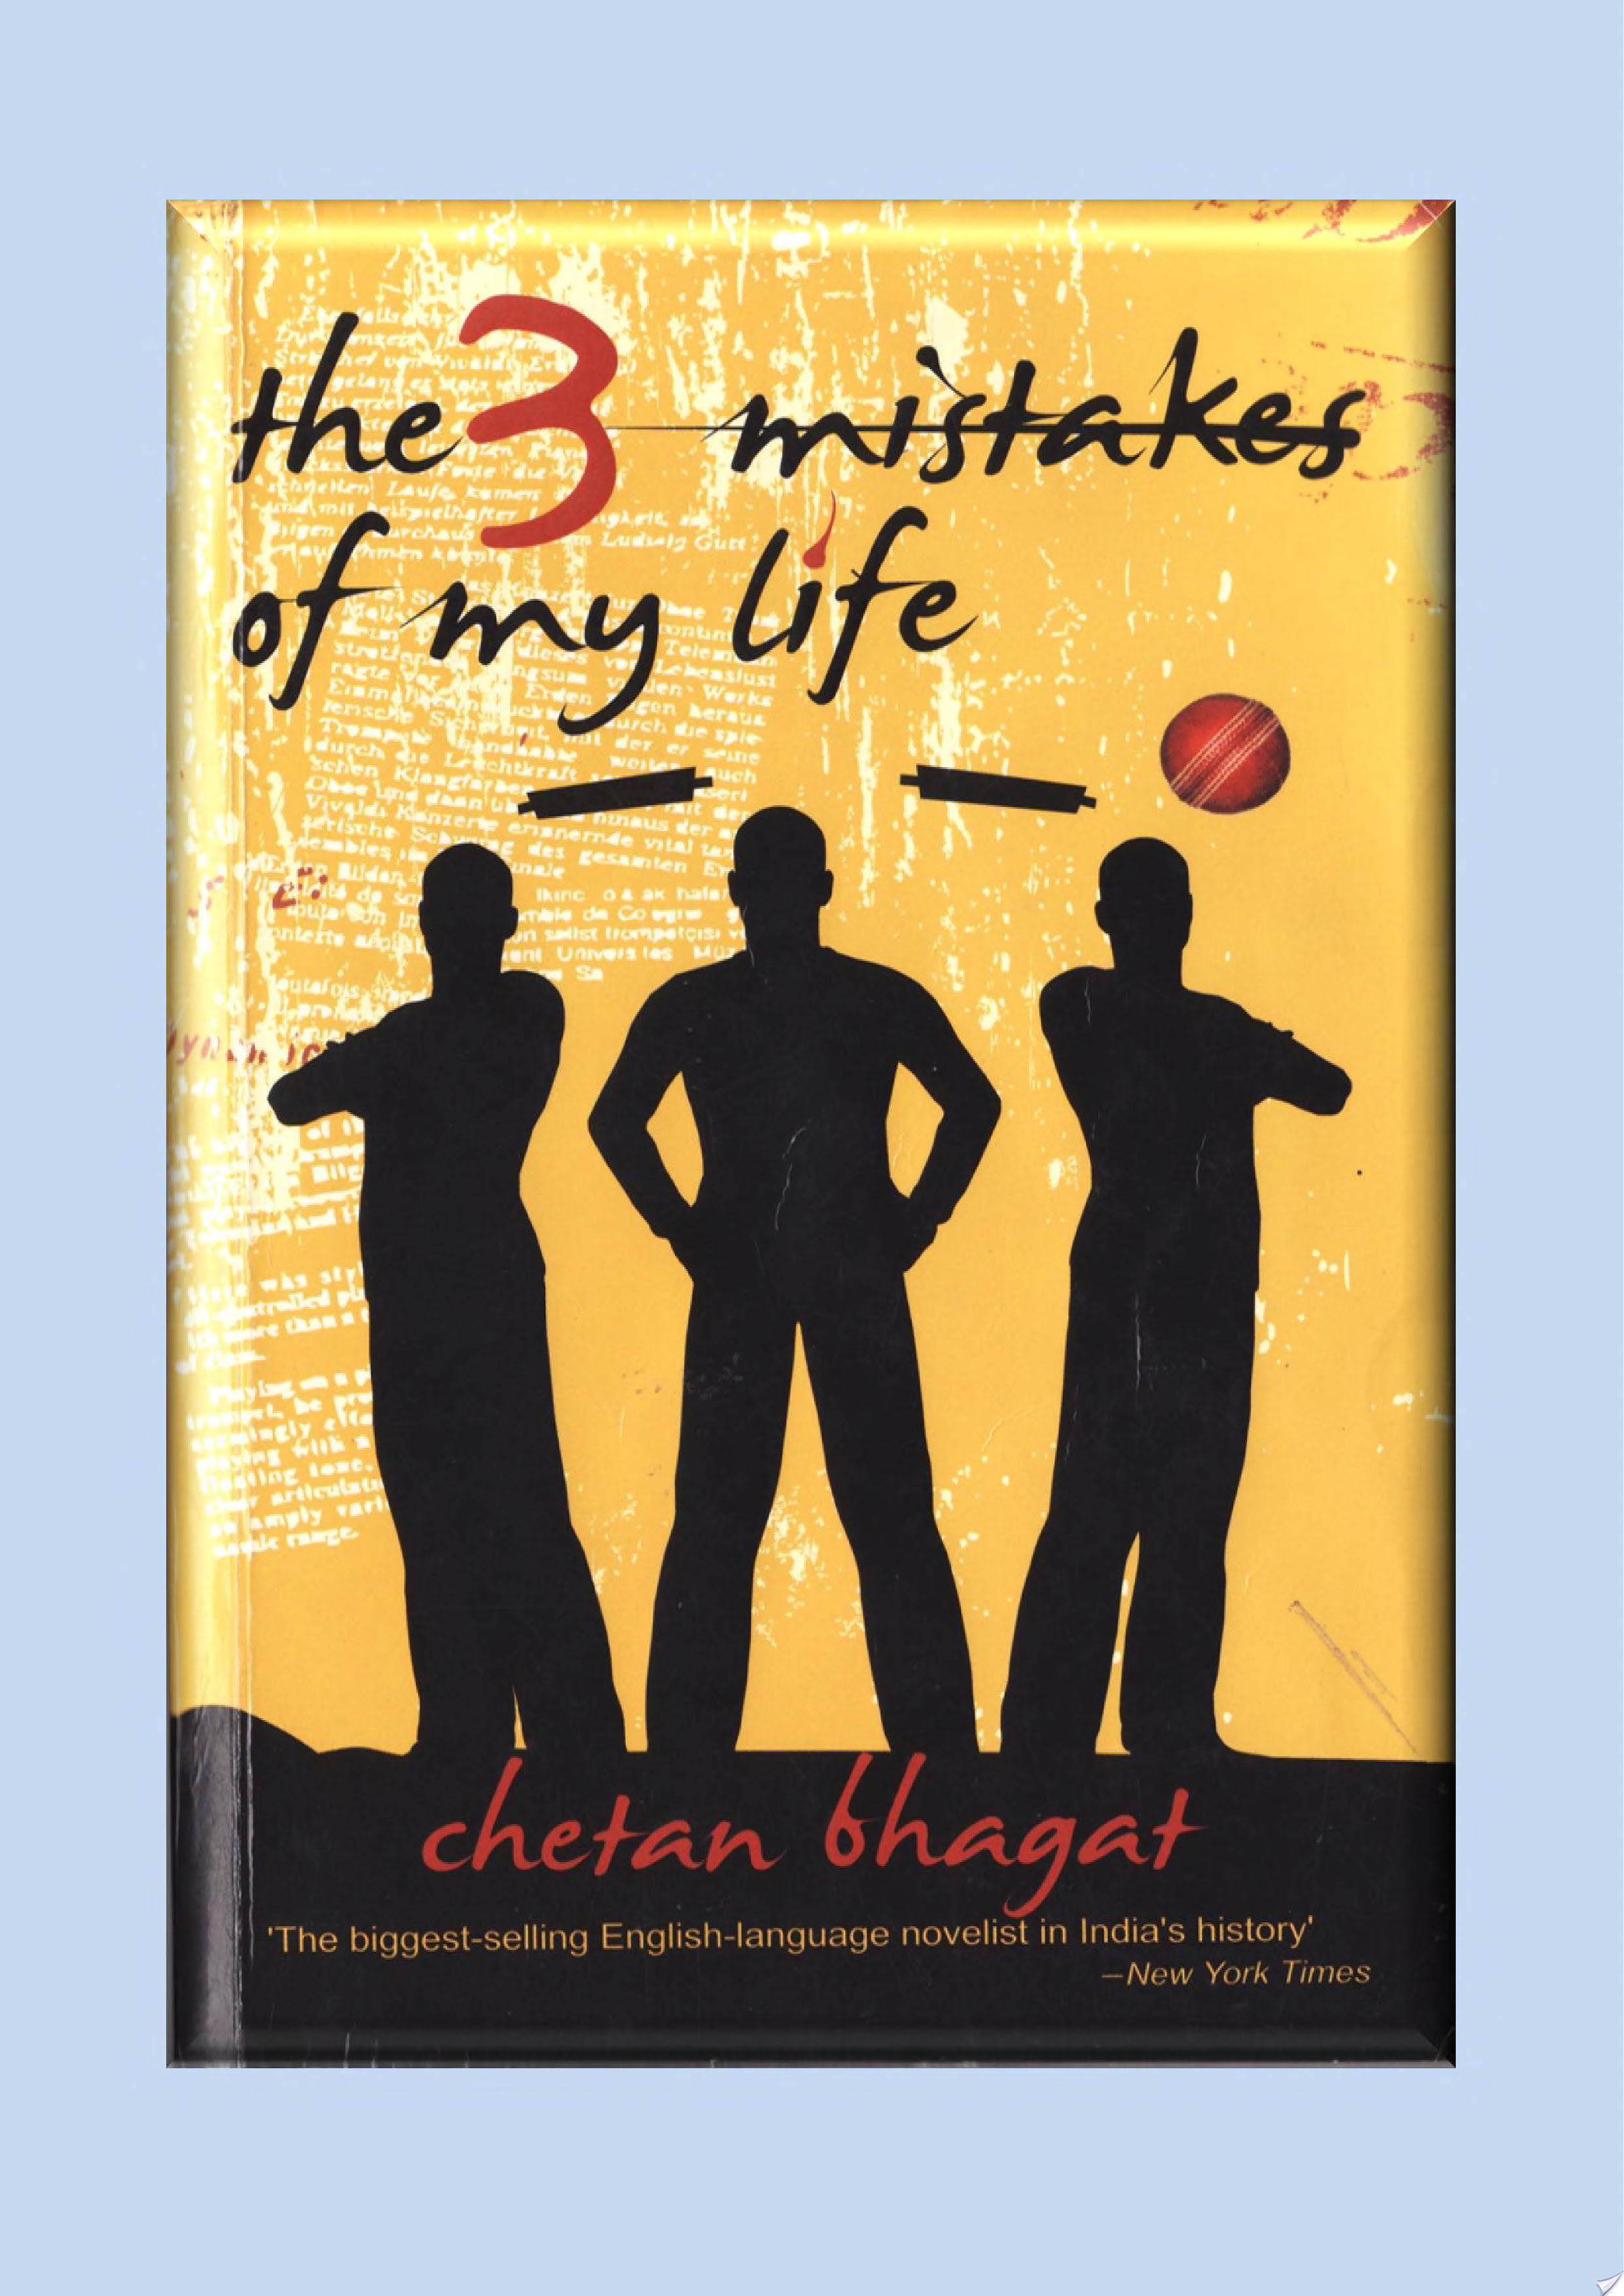 three mistakes of my life The 3 mistakes of my life by chetan bhagat is the third book of chetan bhagat  after five point someone and one night @ call centre.